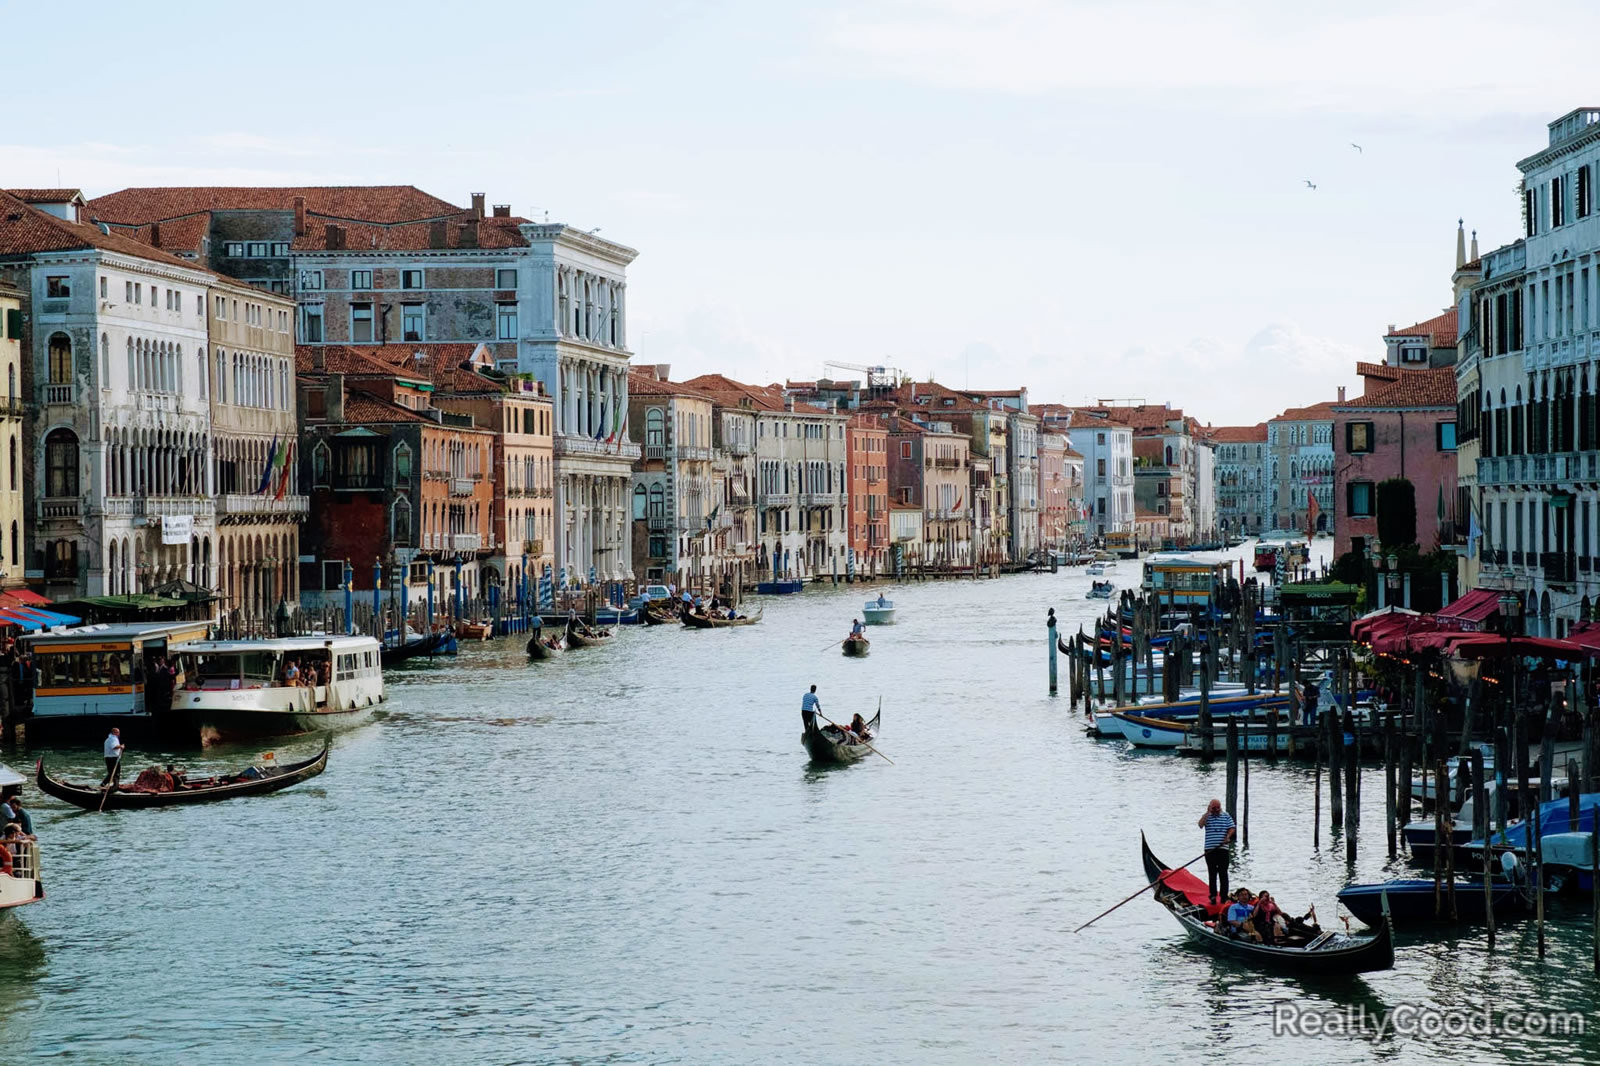 Venice, Italy waterway